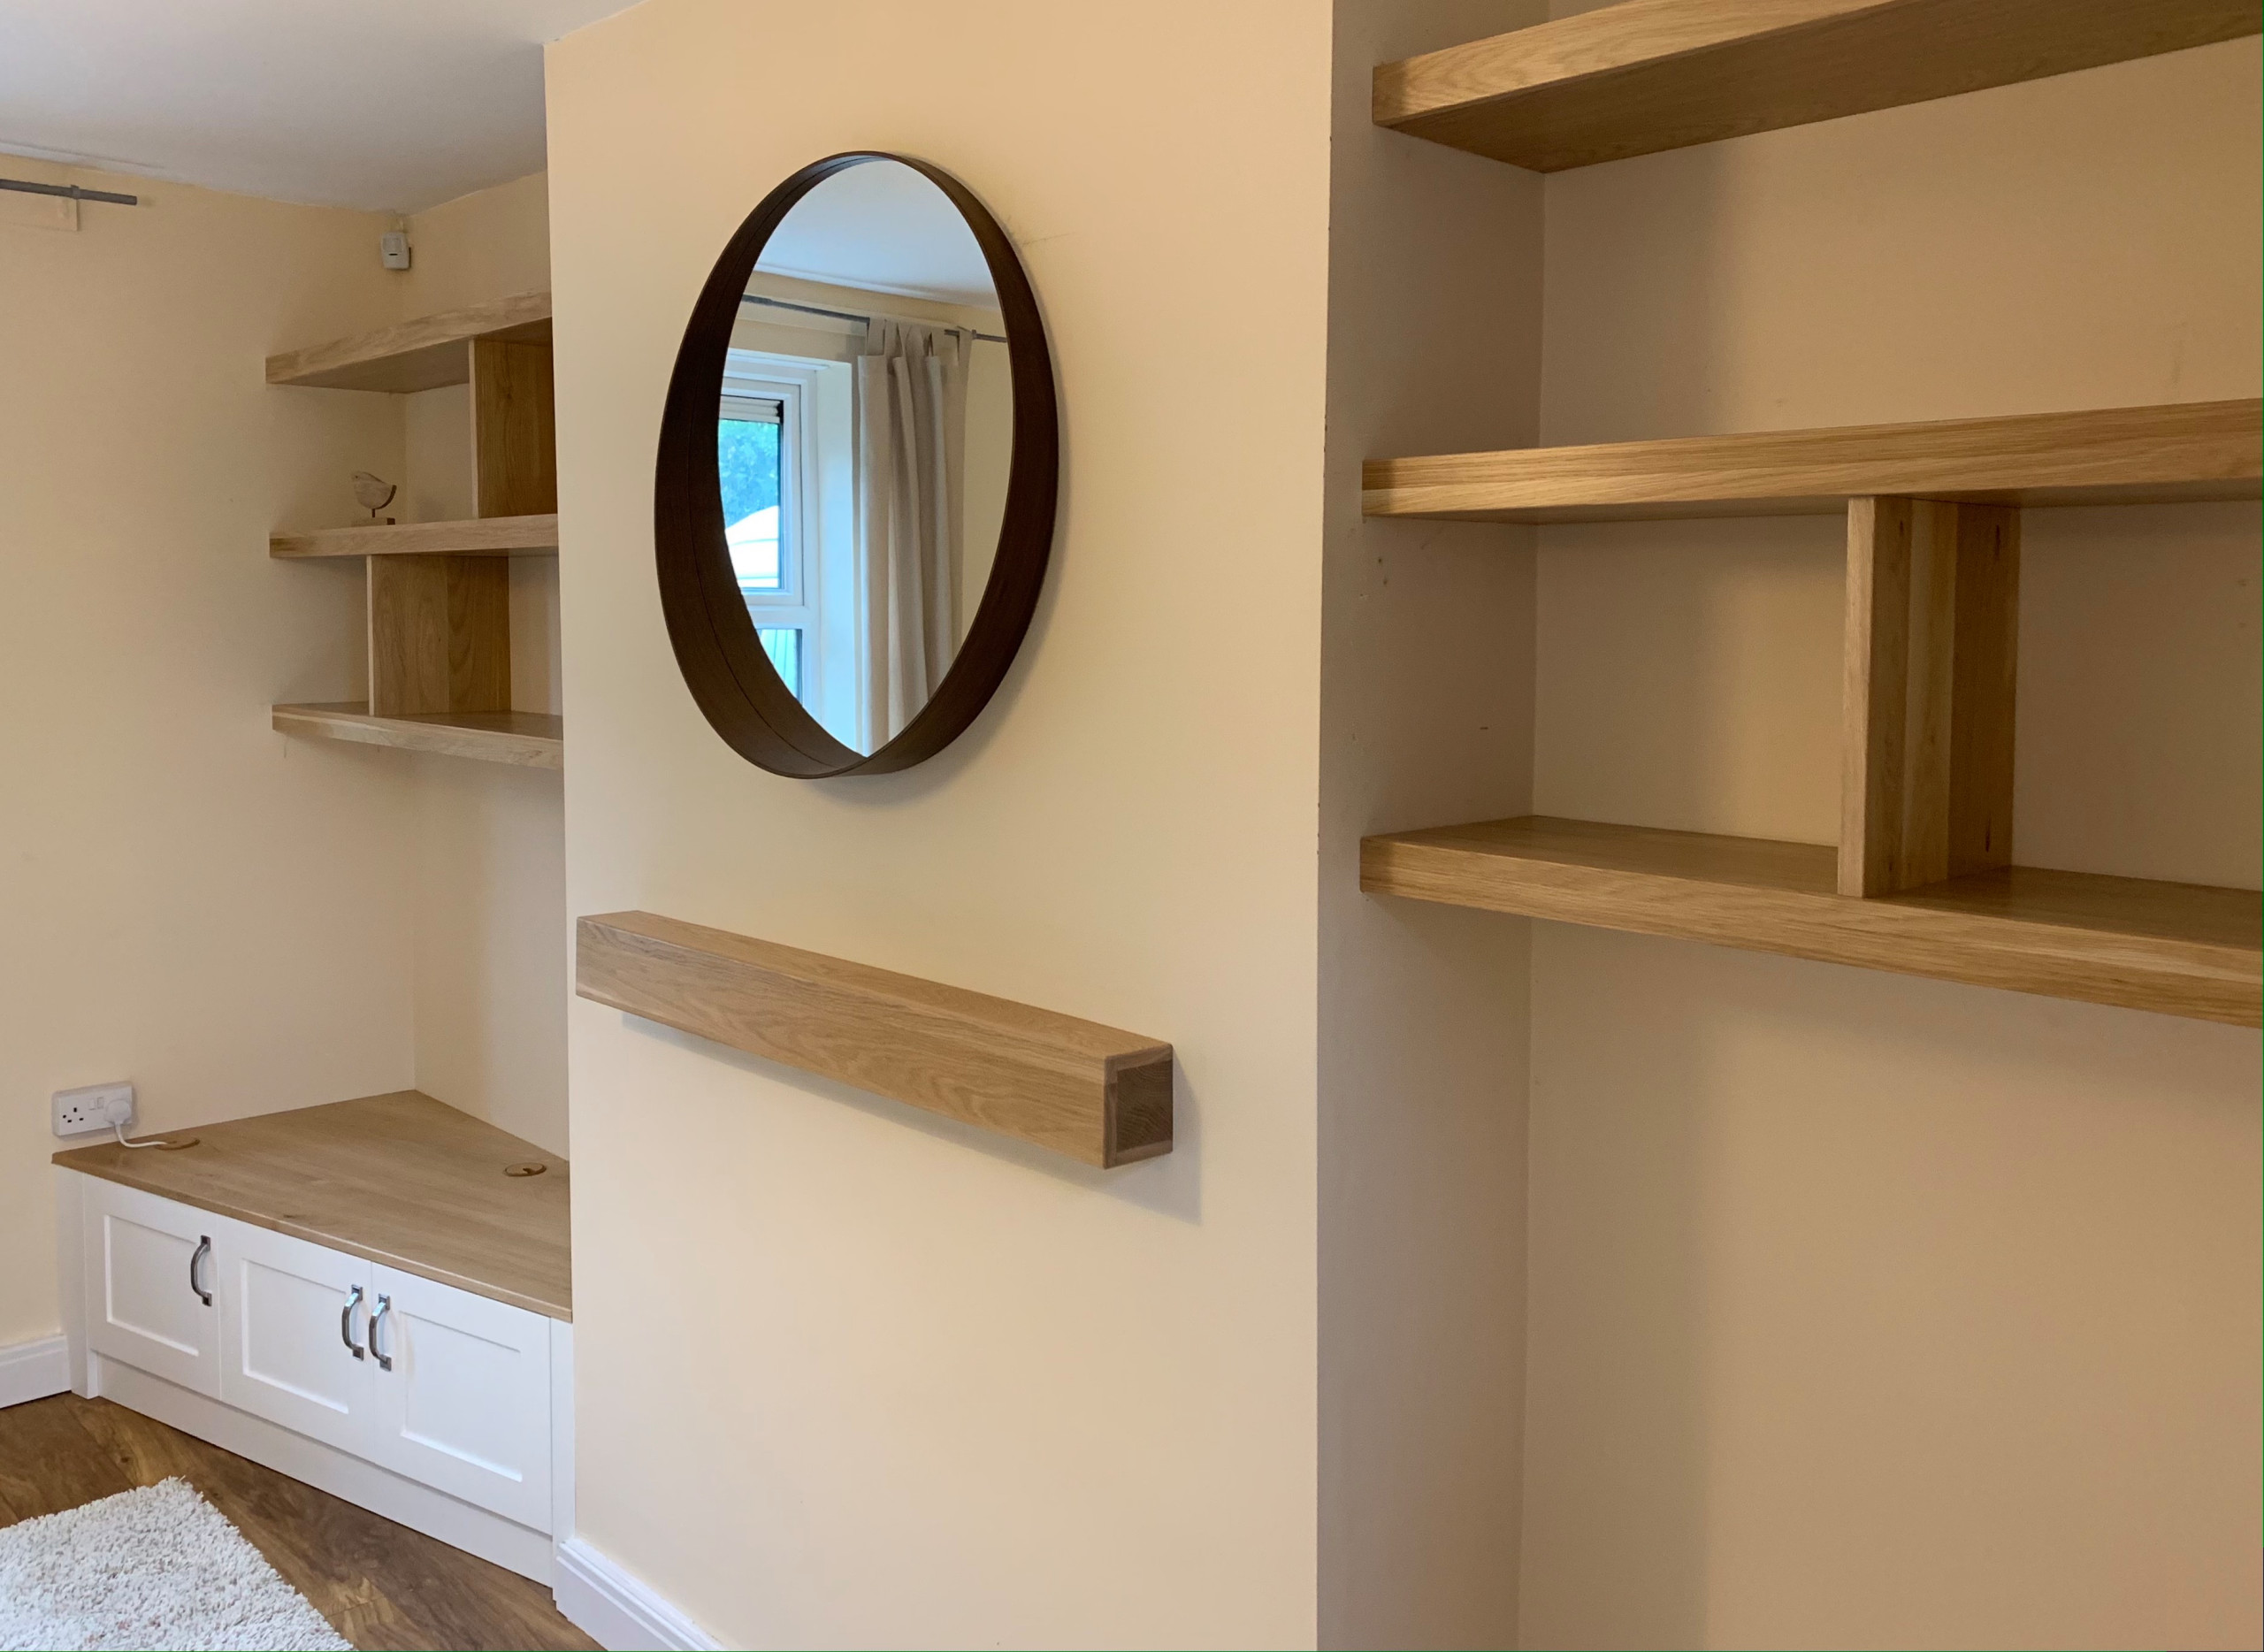 Bespoke Fitted Alcove Furniture in Oak and White